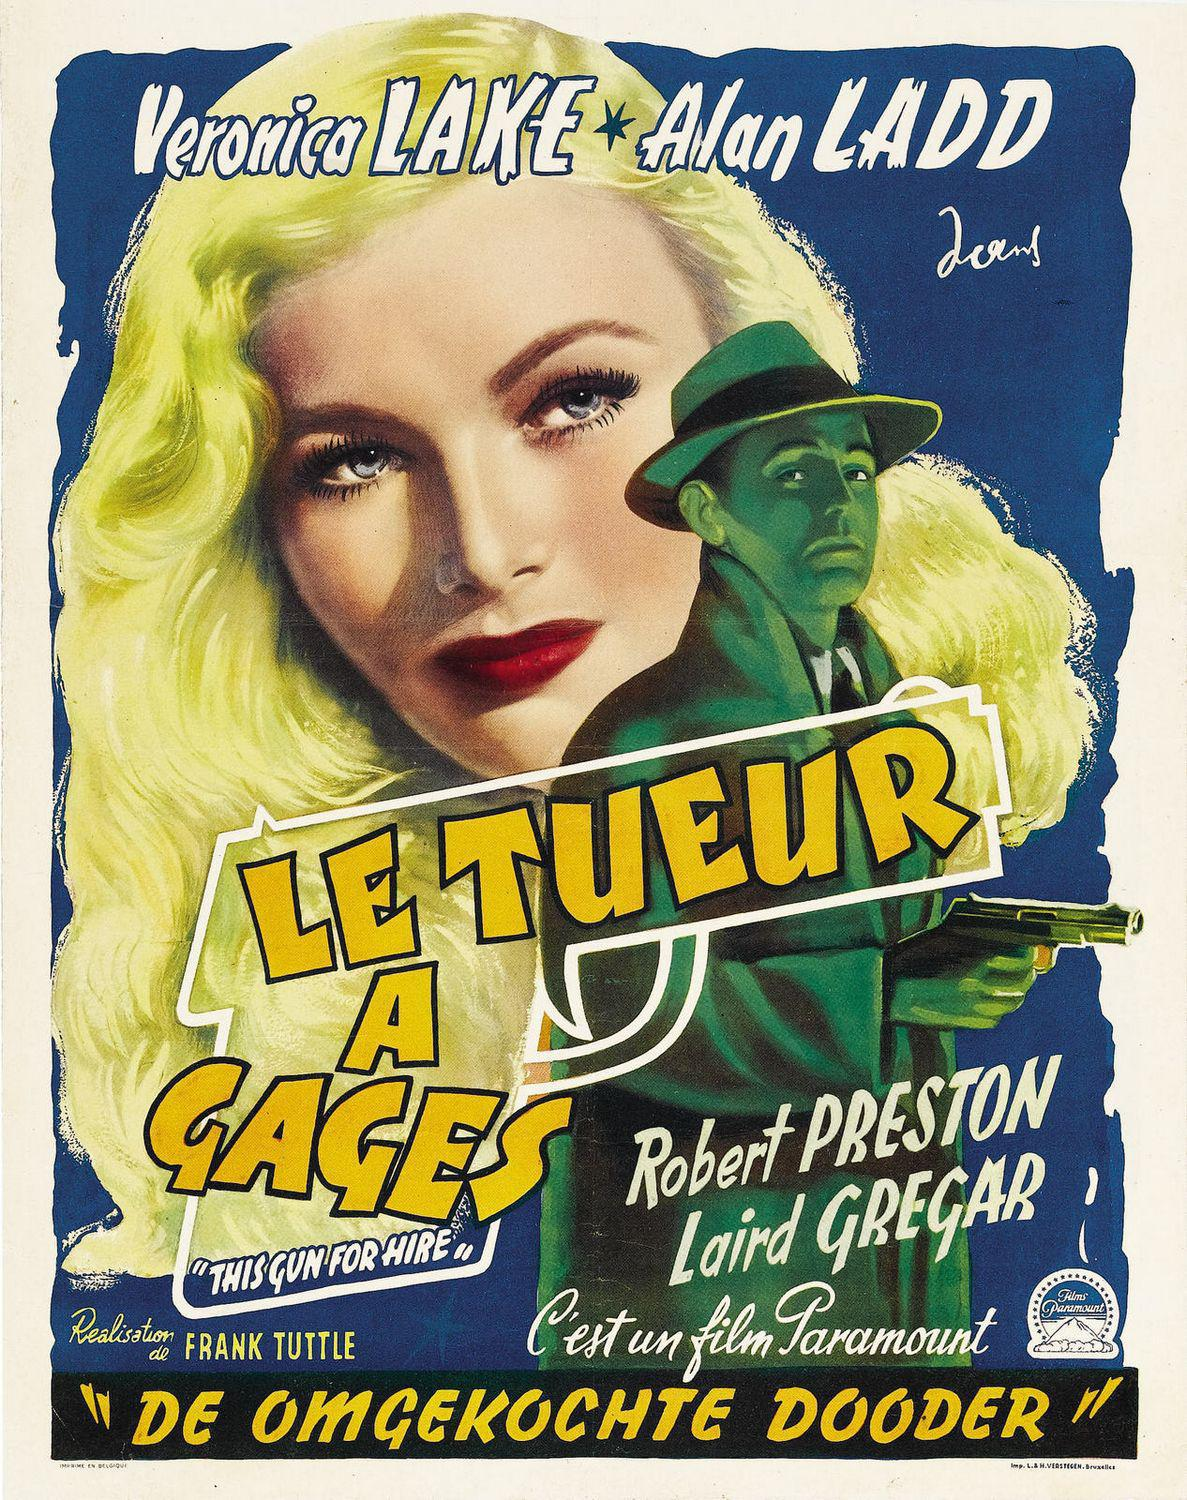 This gun for hire - Alan Ladd - Veronica Lake - old poster  - Le Tueur a Gages